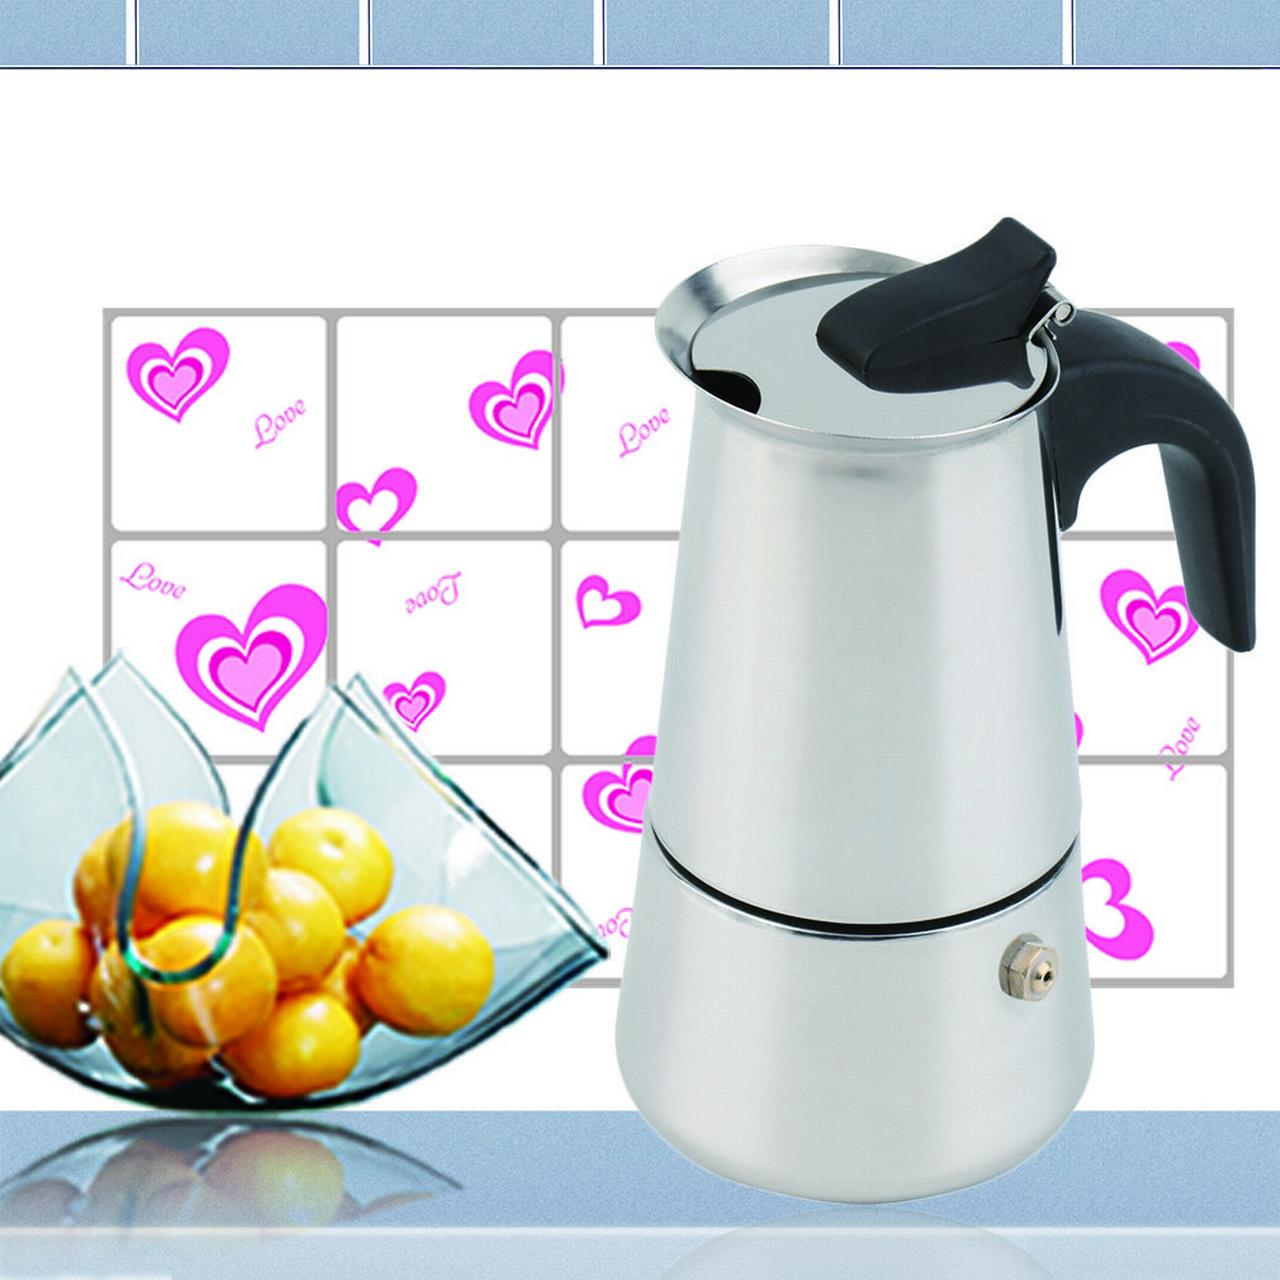 2/4/6-Cup Percolator Stove Top Coffee Maker Moka Espresso Latte Stainless Pot,Silver